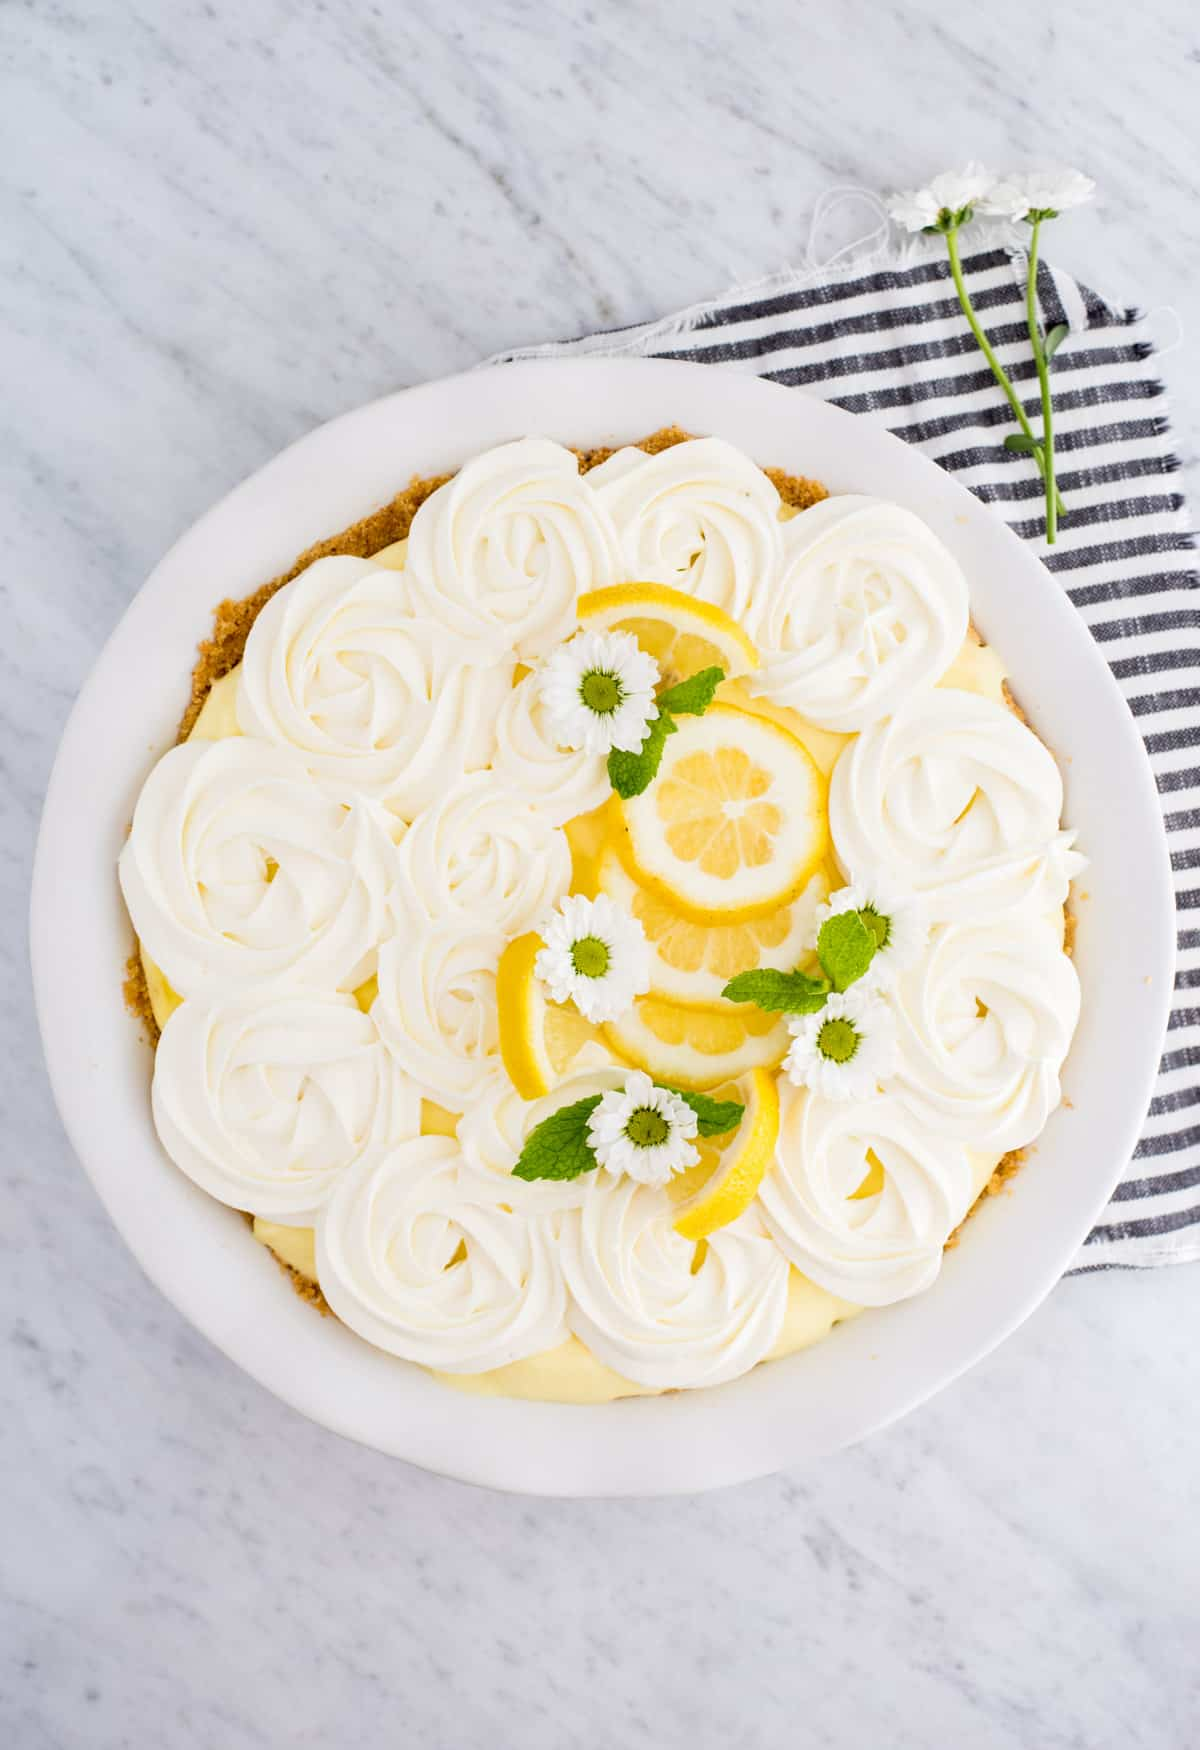 no bake triple layer lemon pudding pie in white pie plate with whipped cream, lemon slices, white flowers and mint leaves